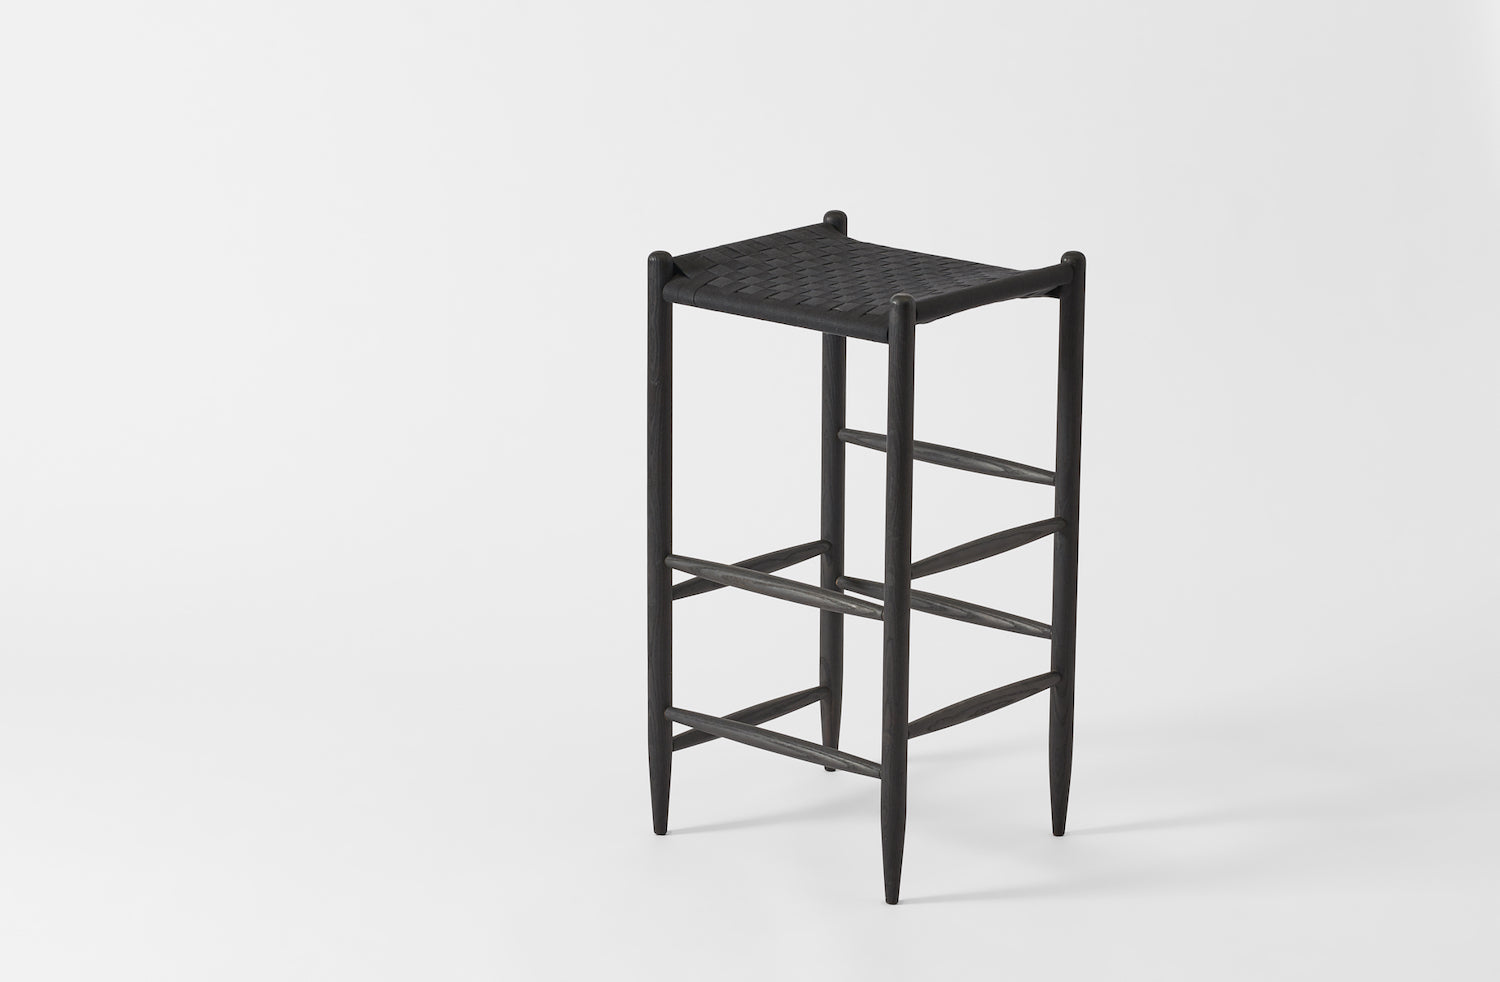 Oja Design March Woven Bar Stool Special Order